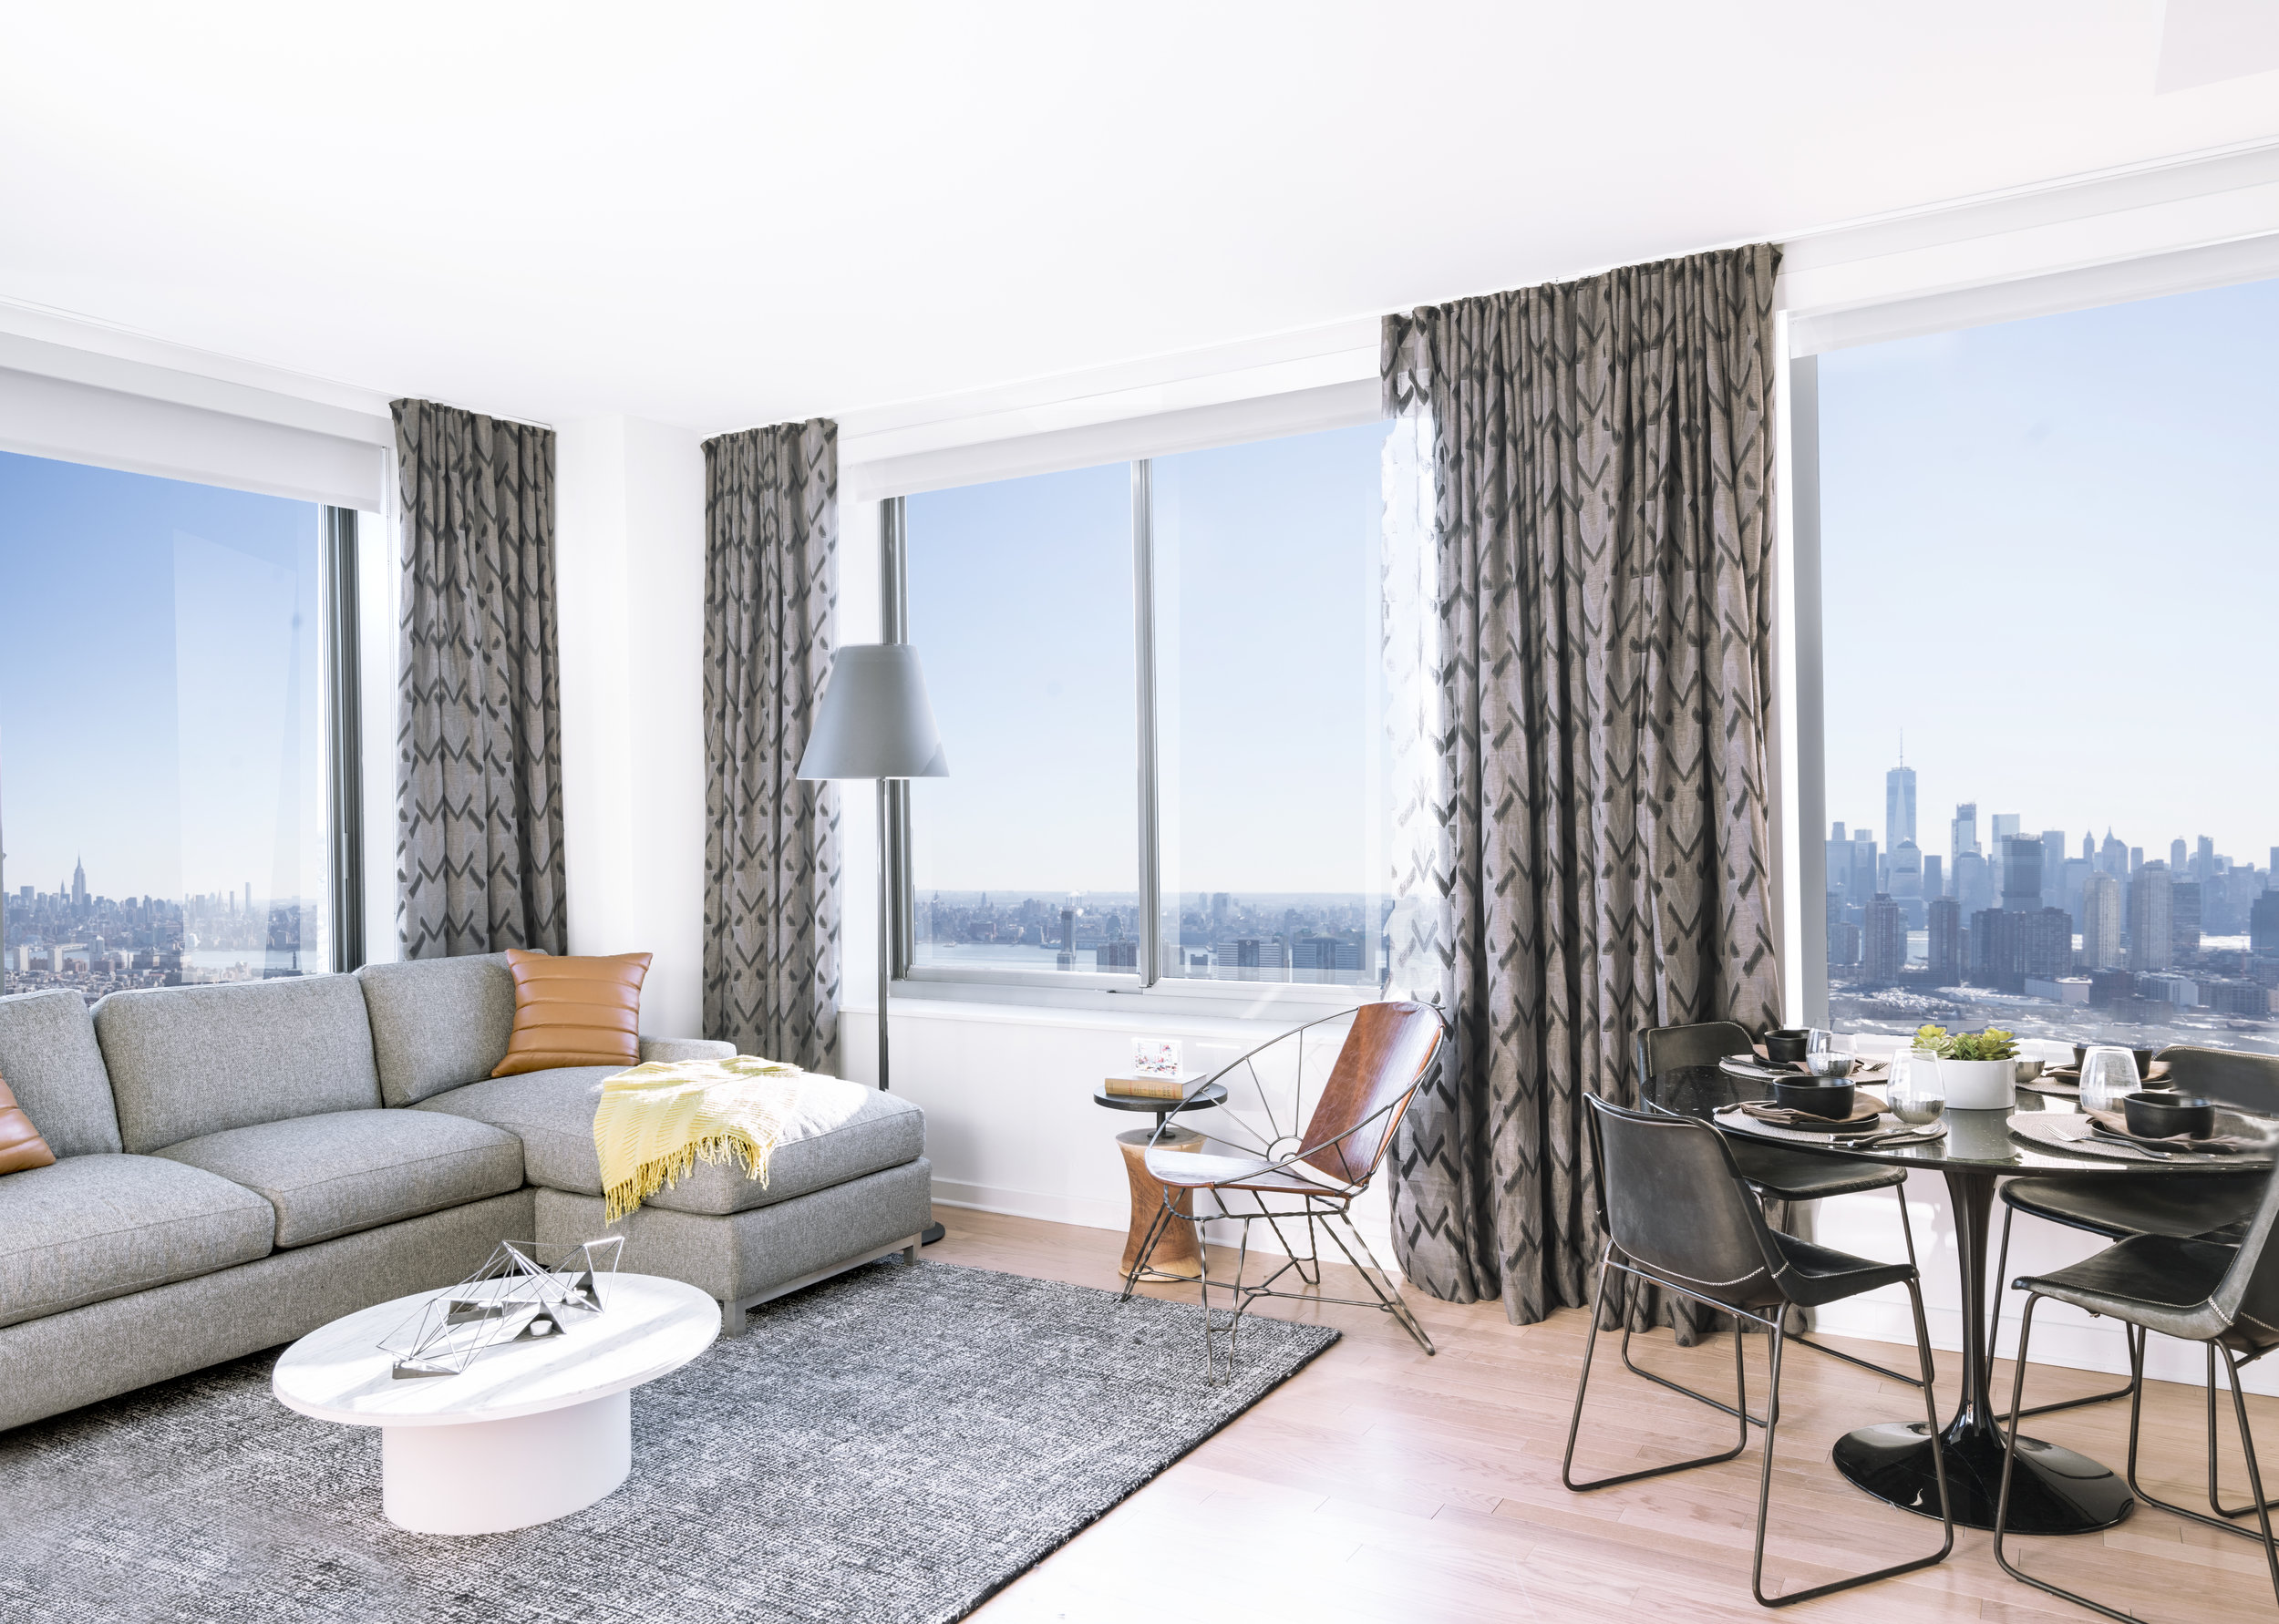 KRE Group Partners With Hello Alfred To Launch In-Home Hospitality Platform Across Developer's New Jersey Portfolio